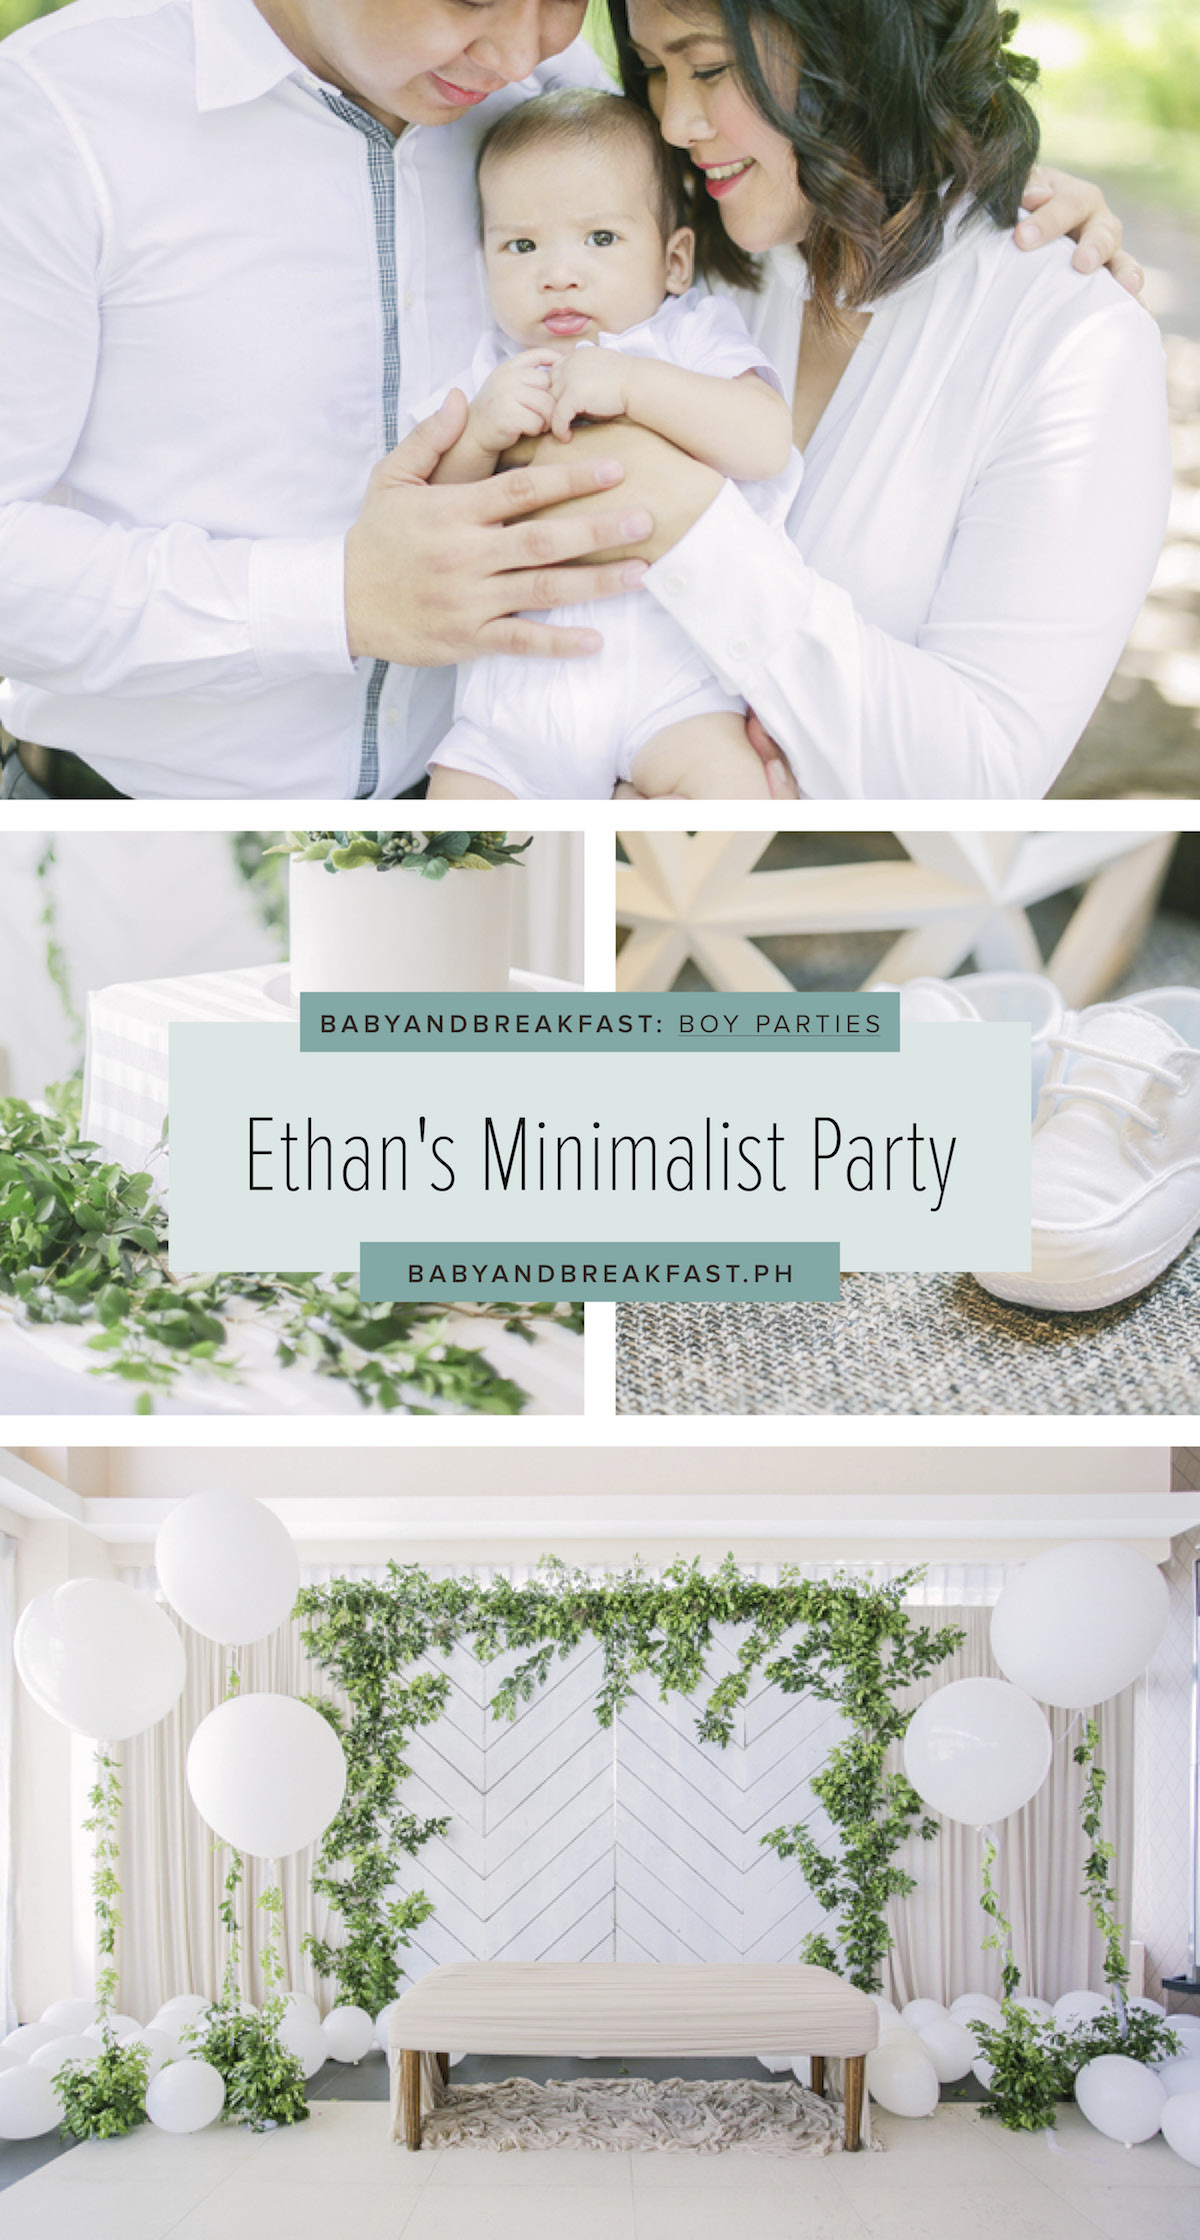 Baby and Breakfast: Boy Parties Ethan's Minimalist Party